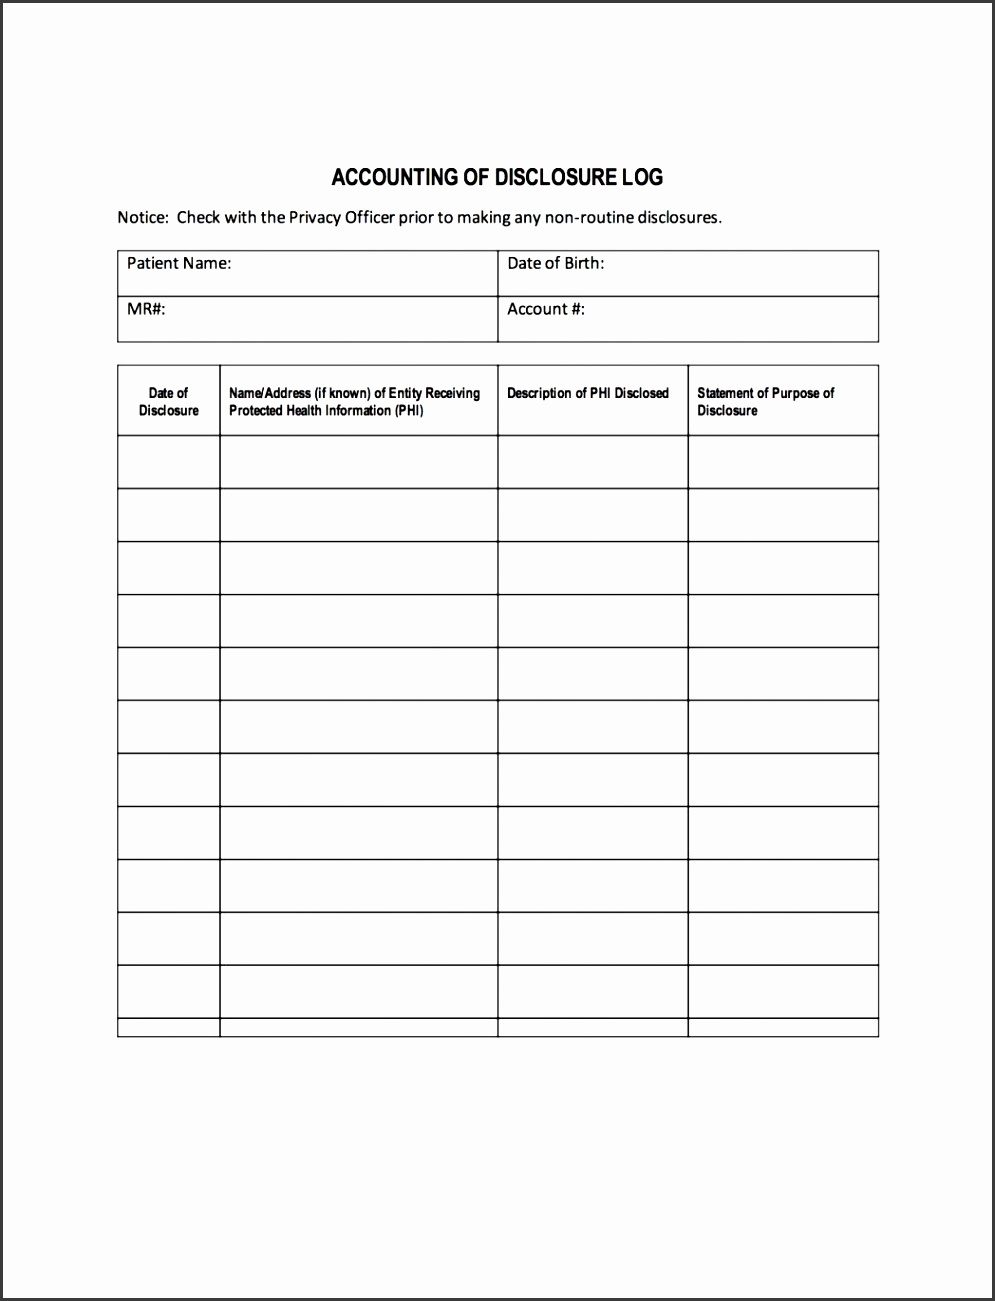 Business Ledger Template Accounting Of Disclosure Log Arkansas Mutual  Medical Forms Pdf Disclo Printable Business For  Free General Ledger Template